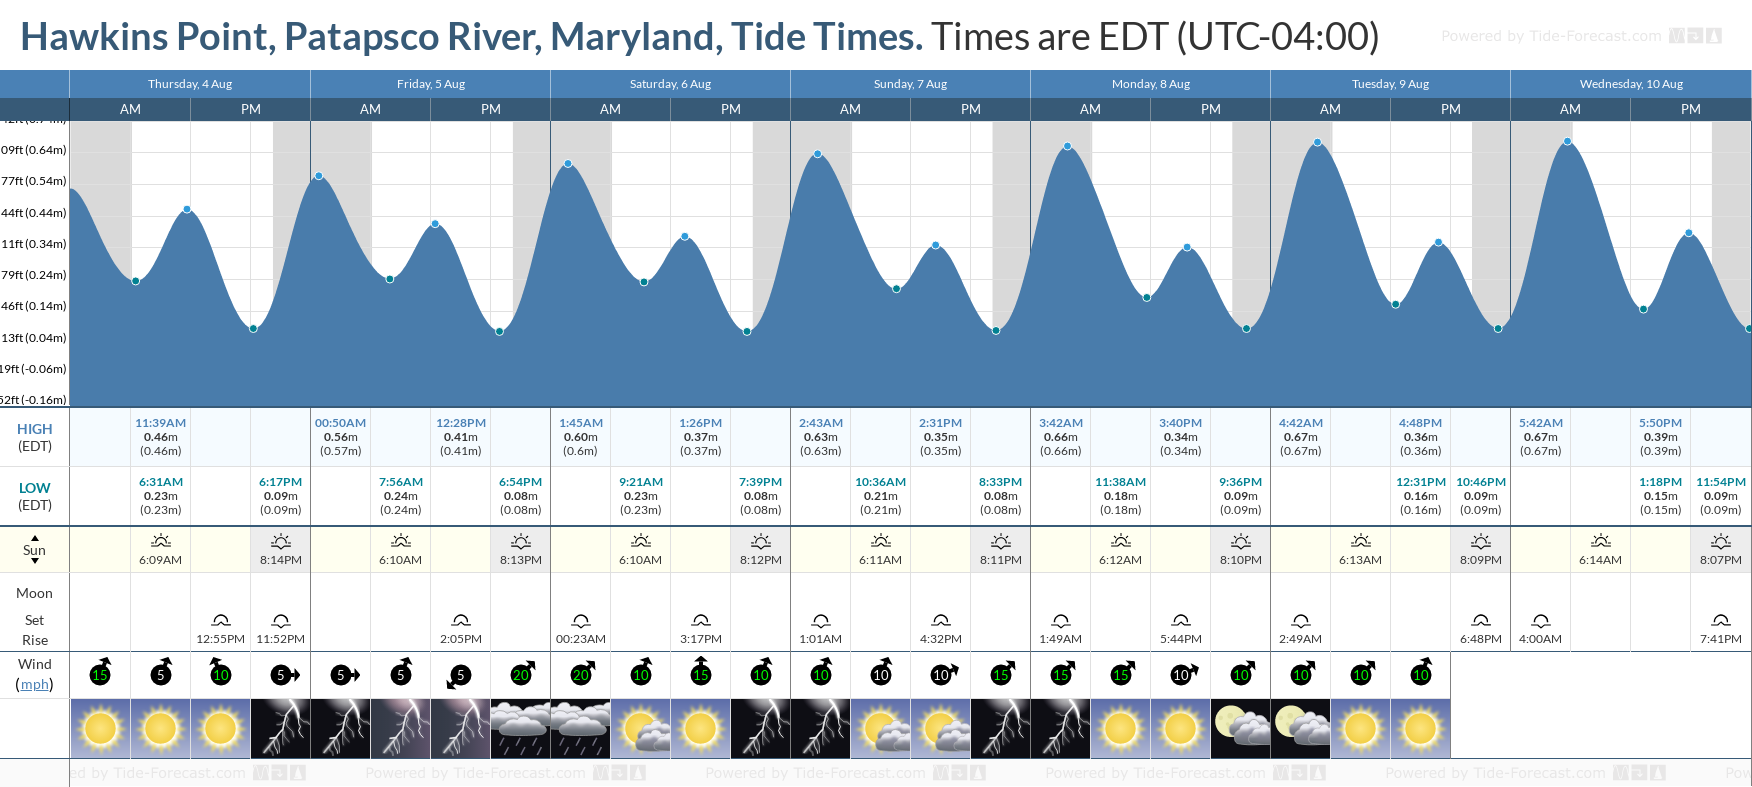 Hawkins Point, Patapsco River, Maryland Tide Chart including high and low tide tide times for the next 7 days